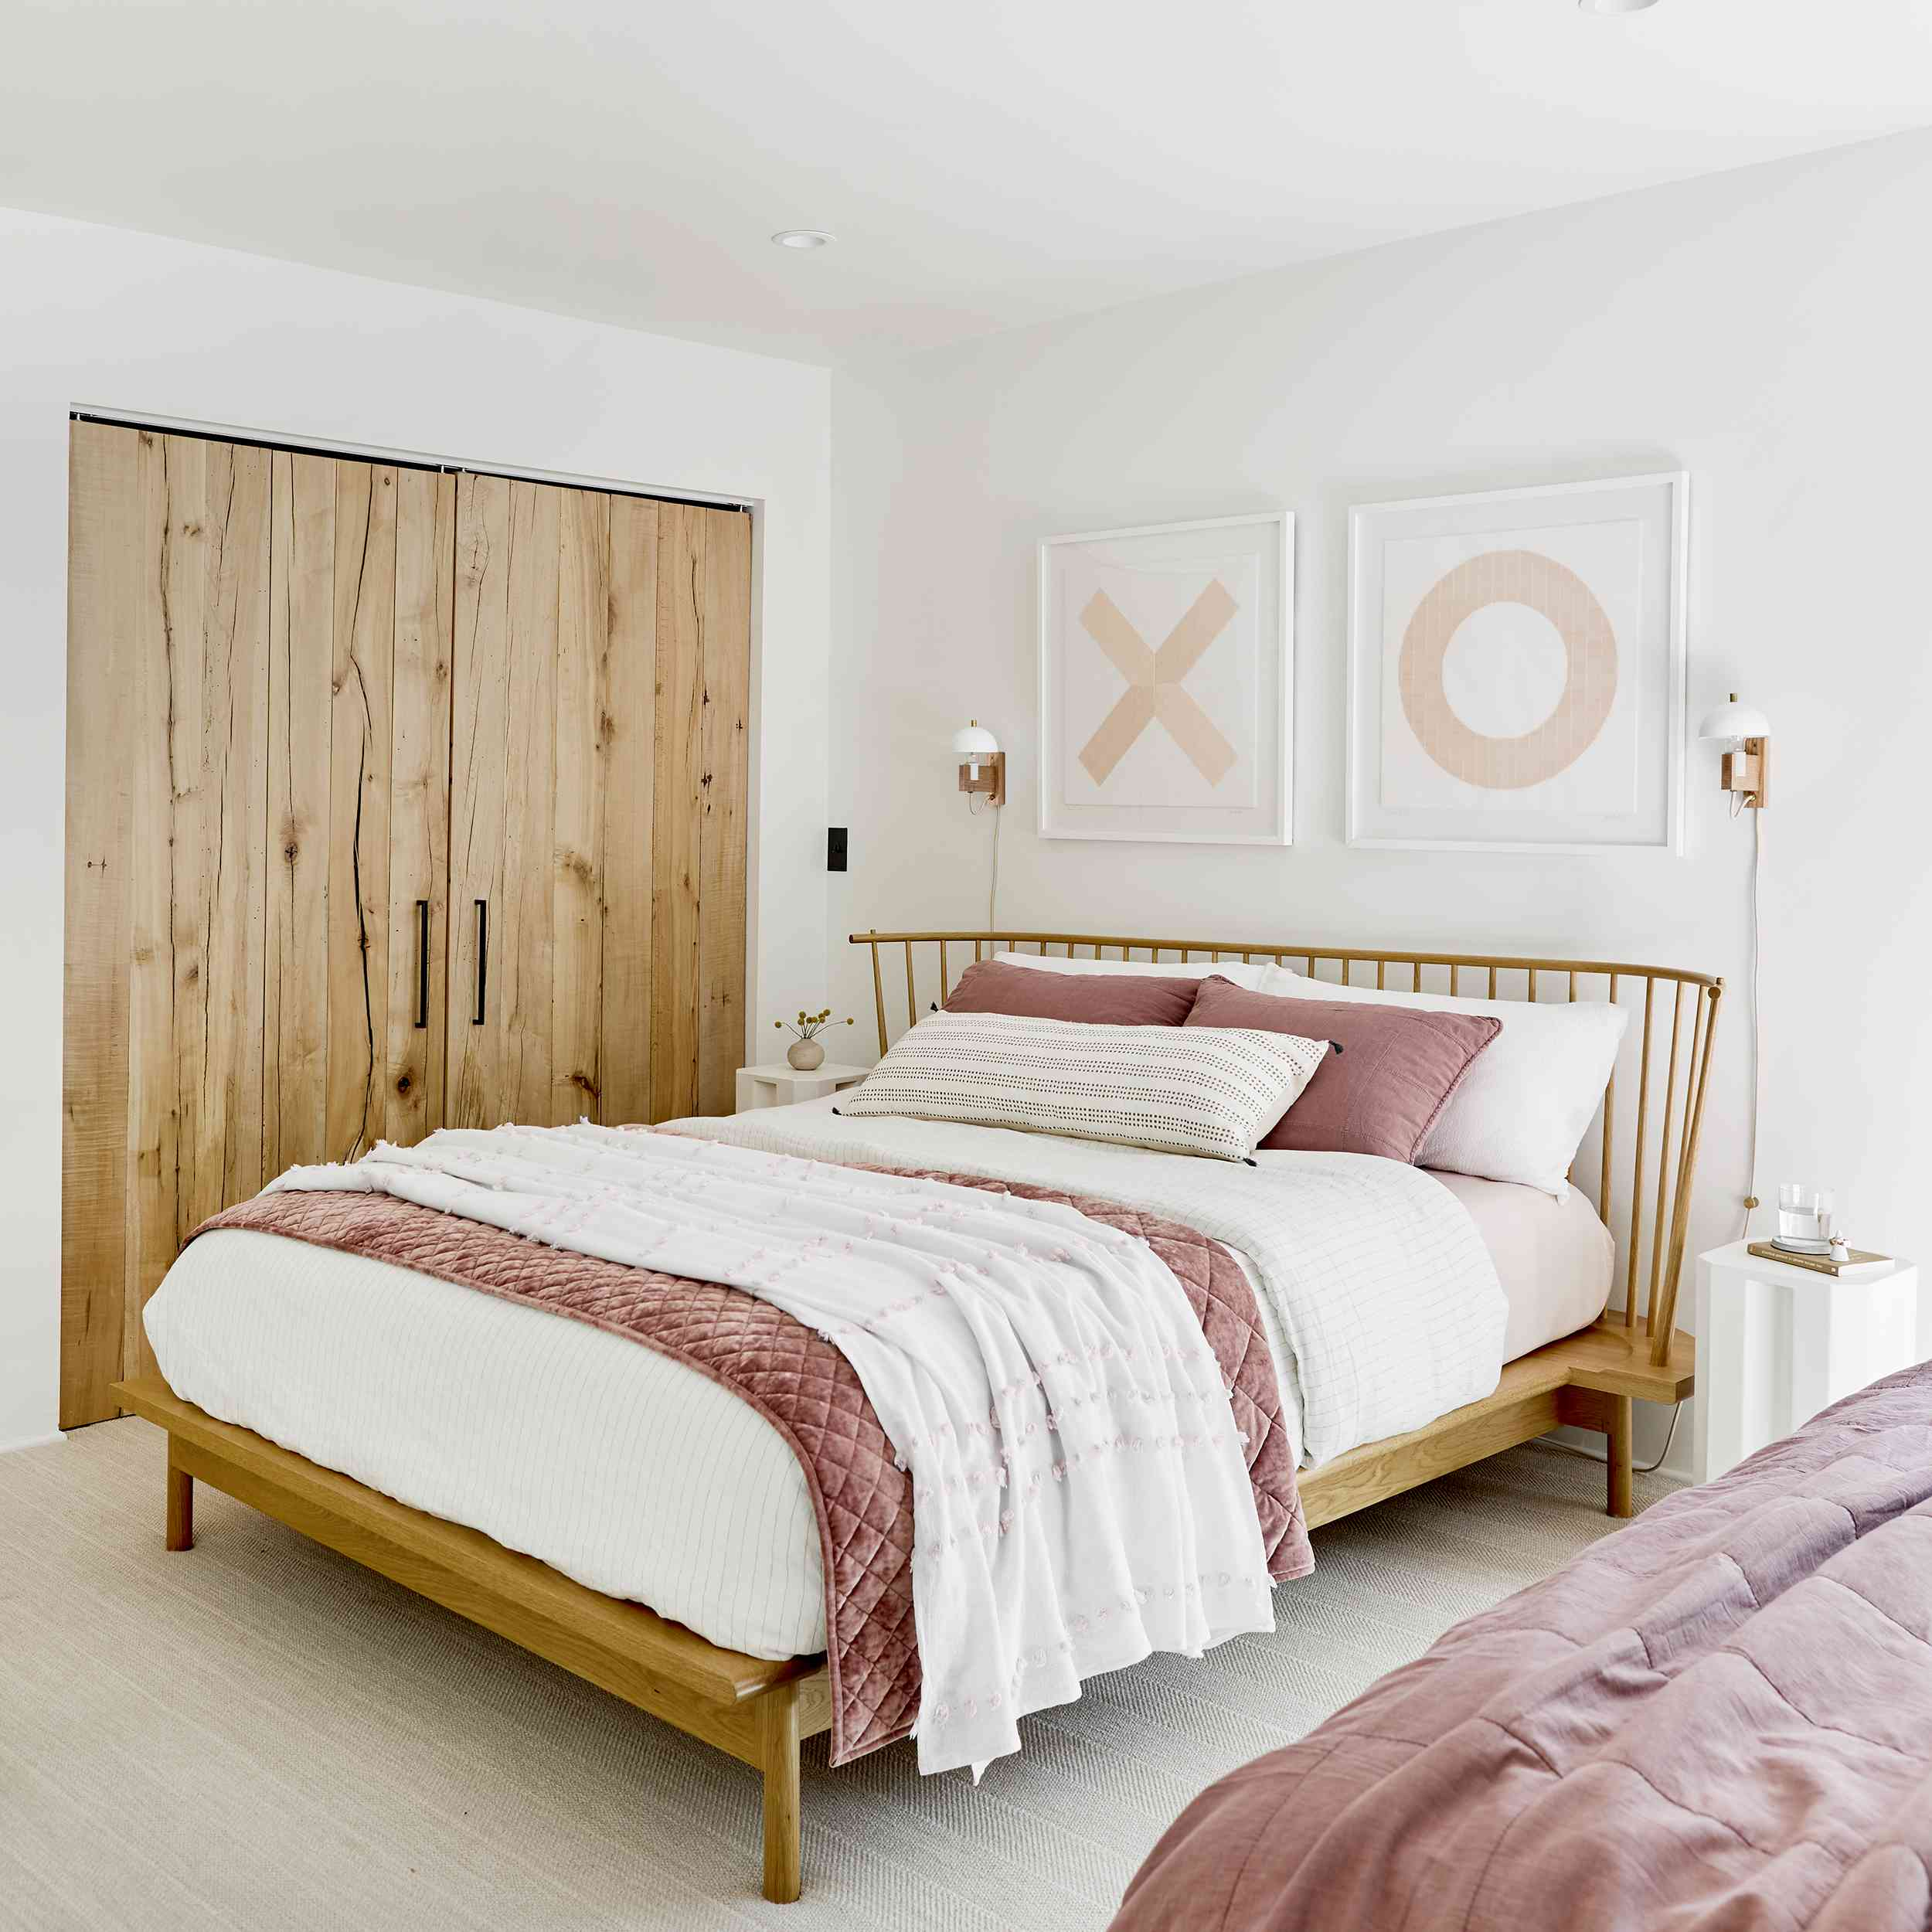 White and dusty pink bedroom with XO wall art and a wooden door